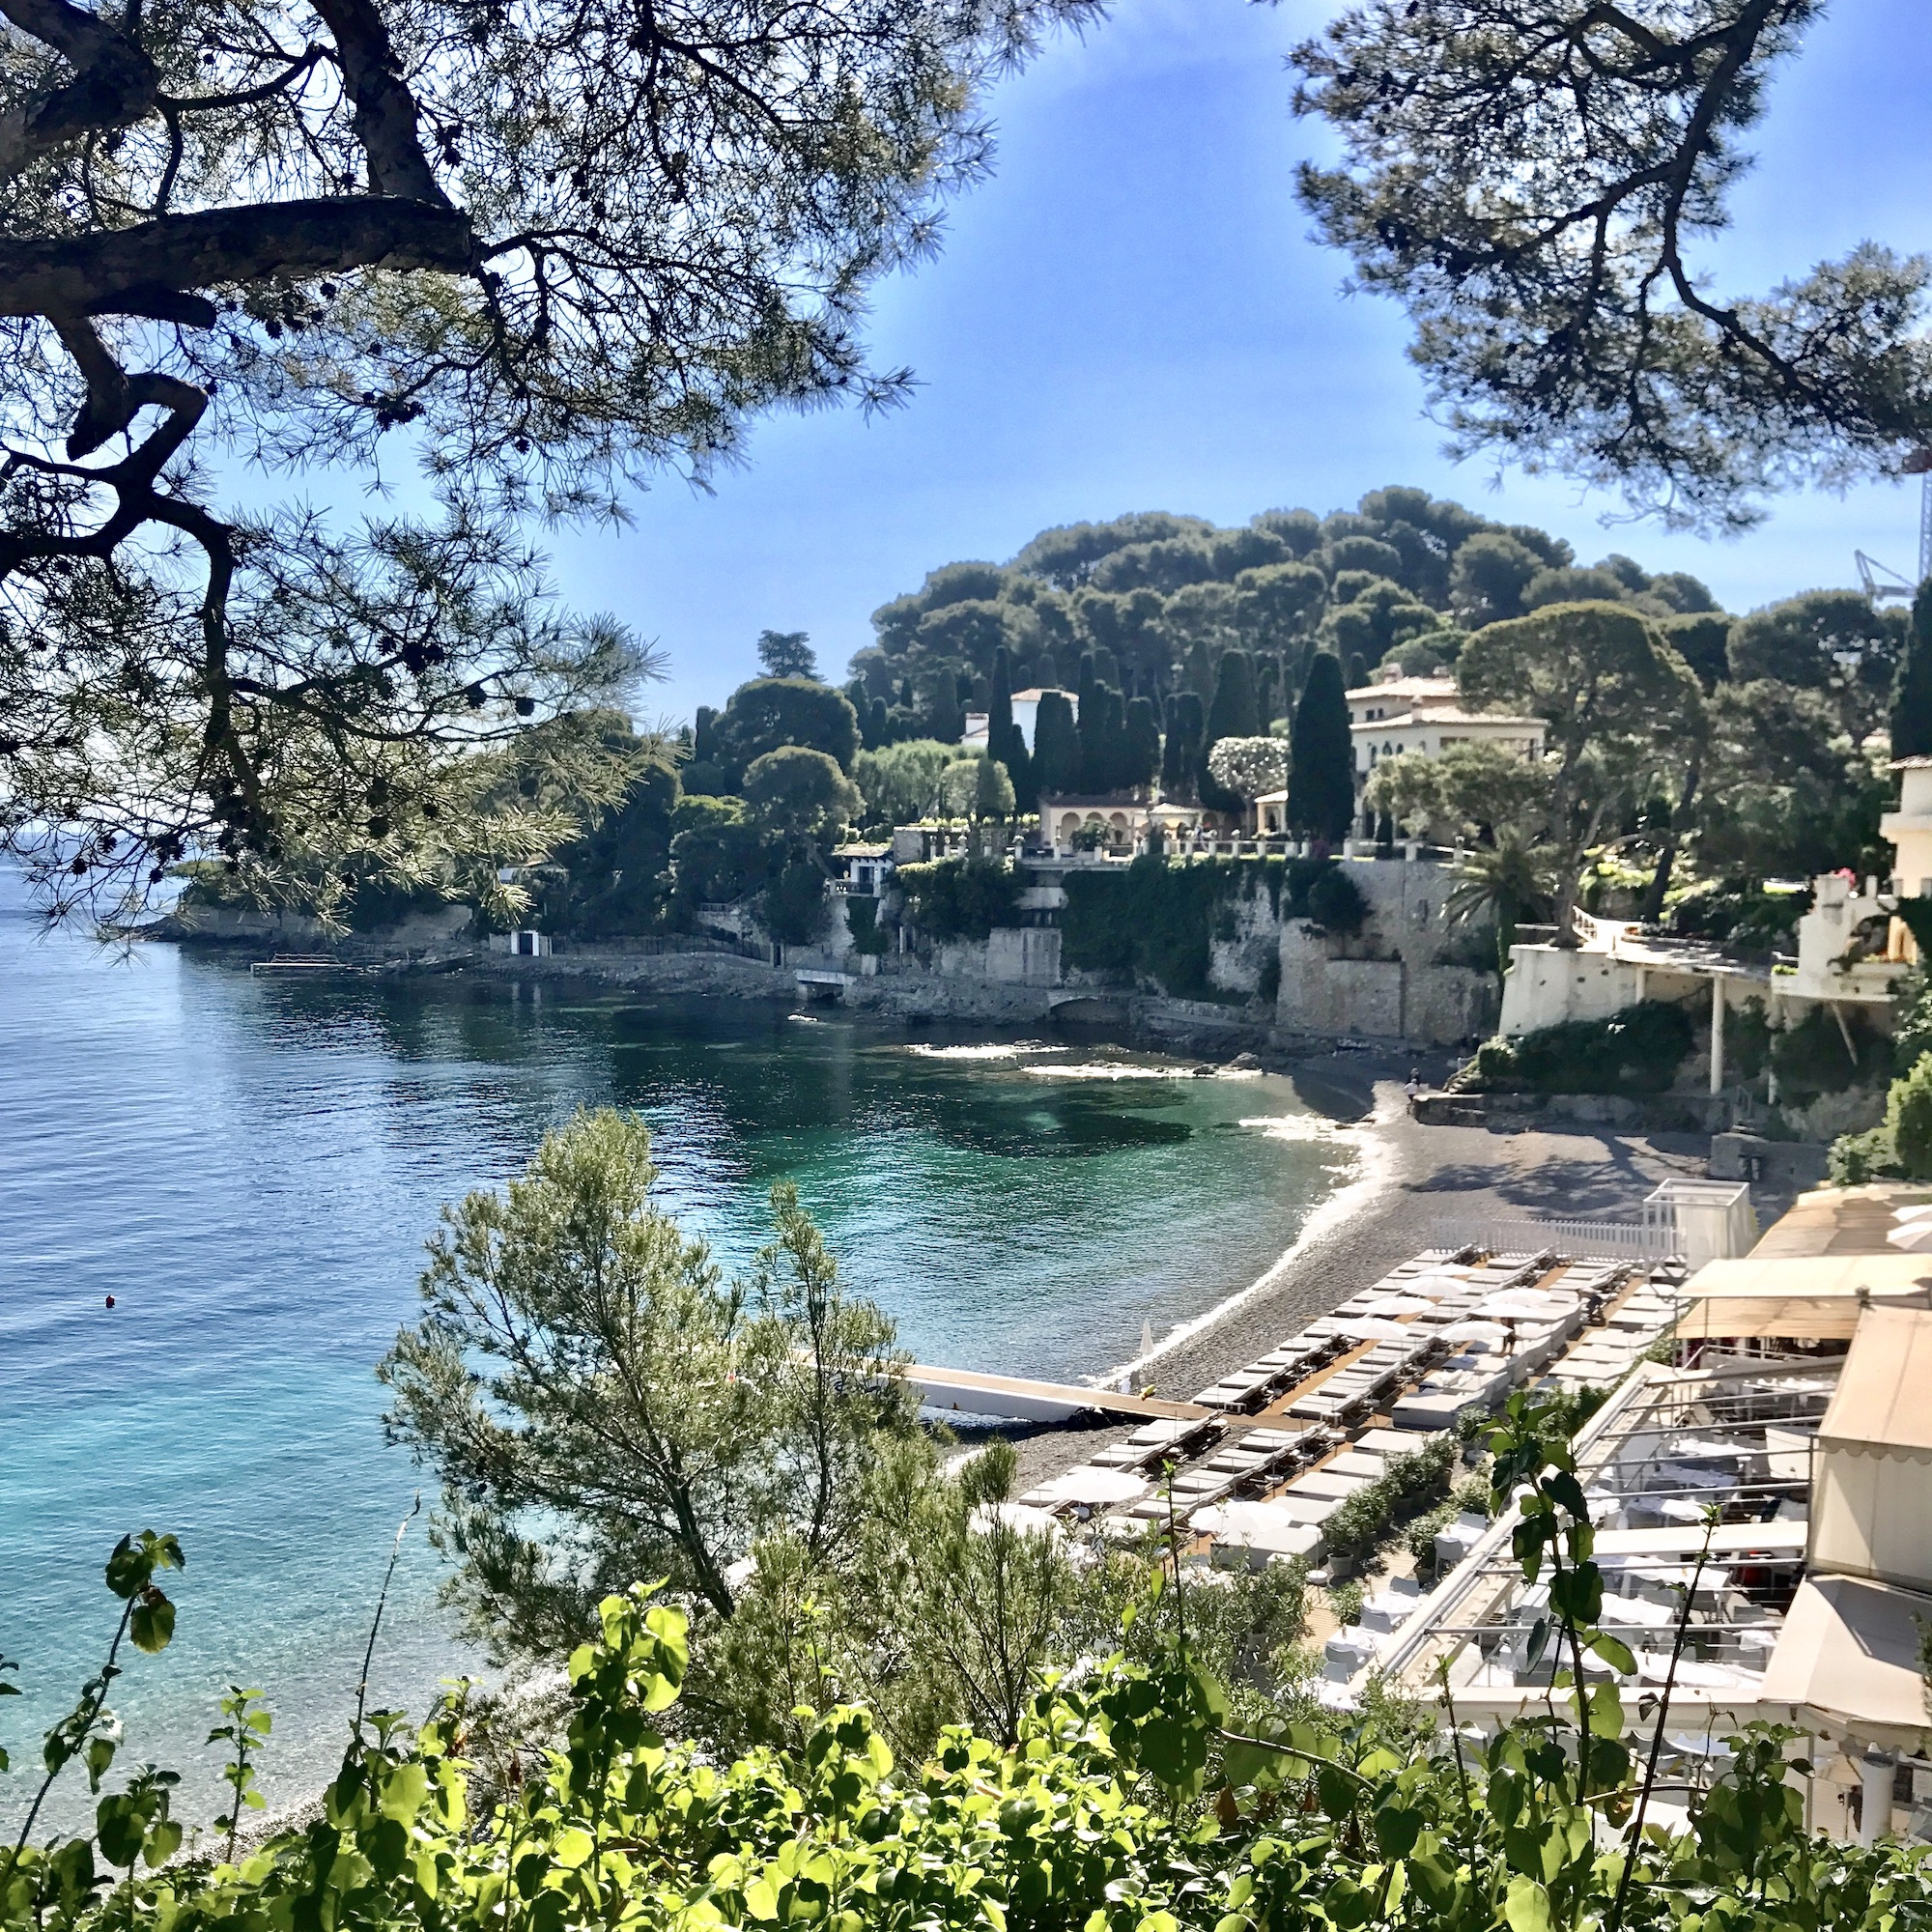 The French Riviera during spring time. If you're looking for a luxury travel advisor to help with your France trip planning, I can help.